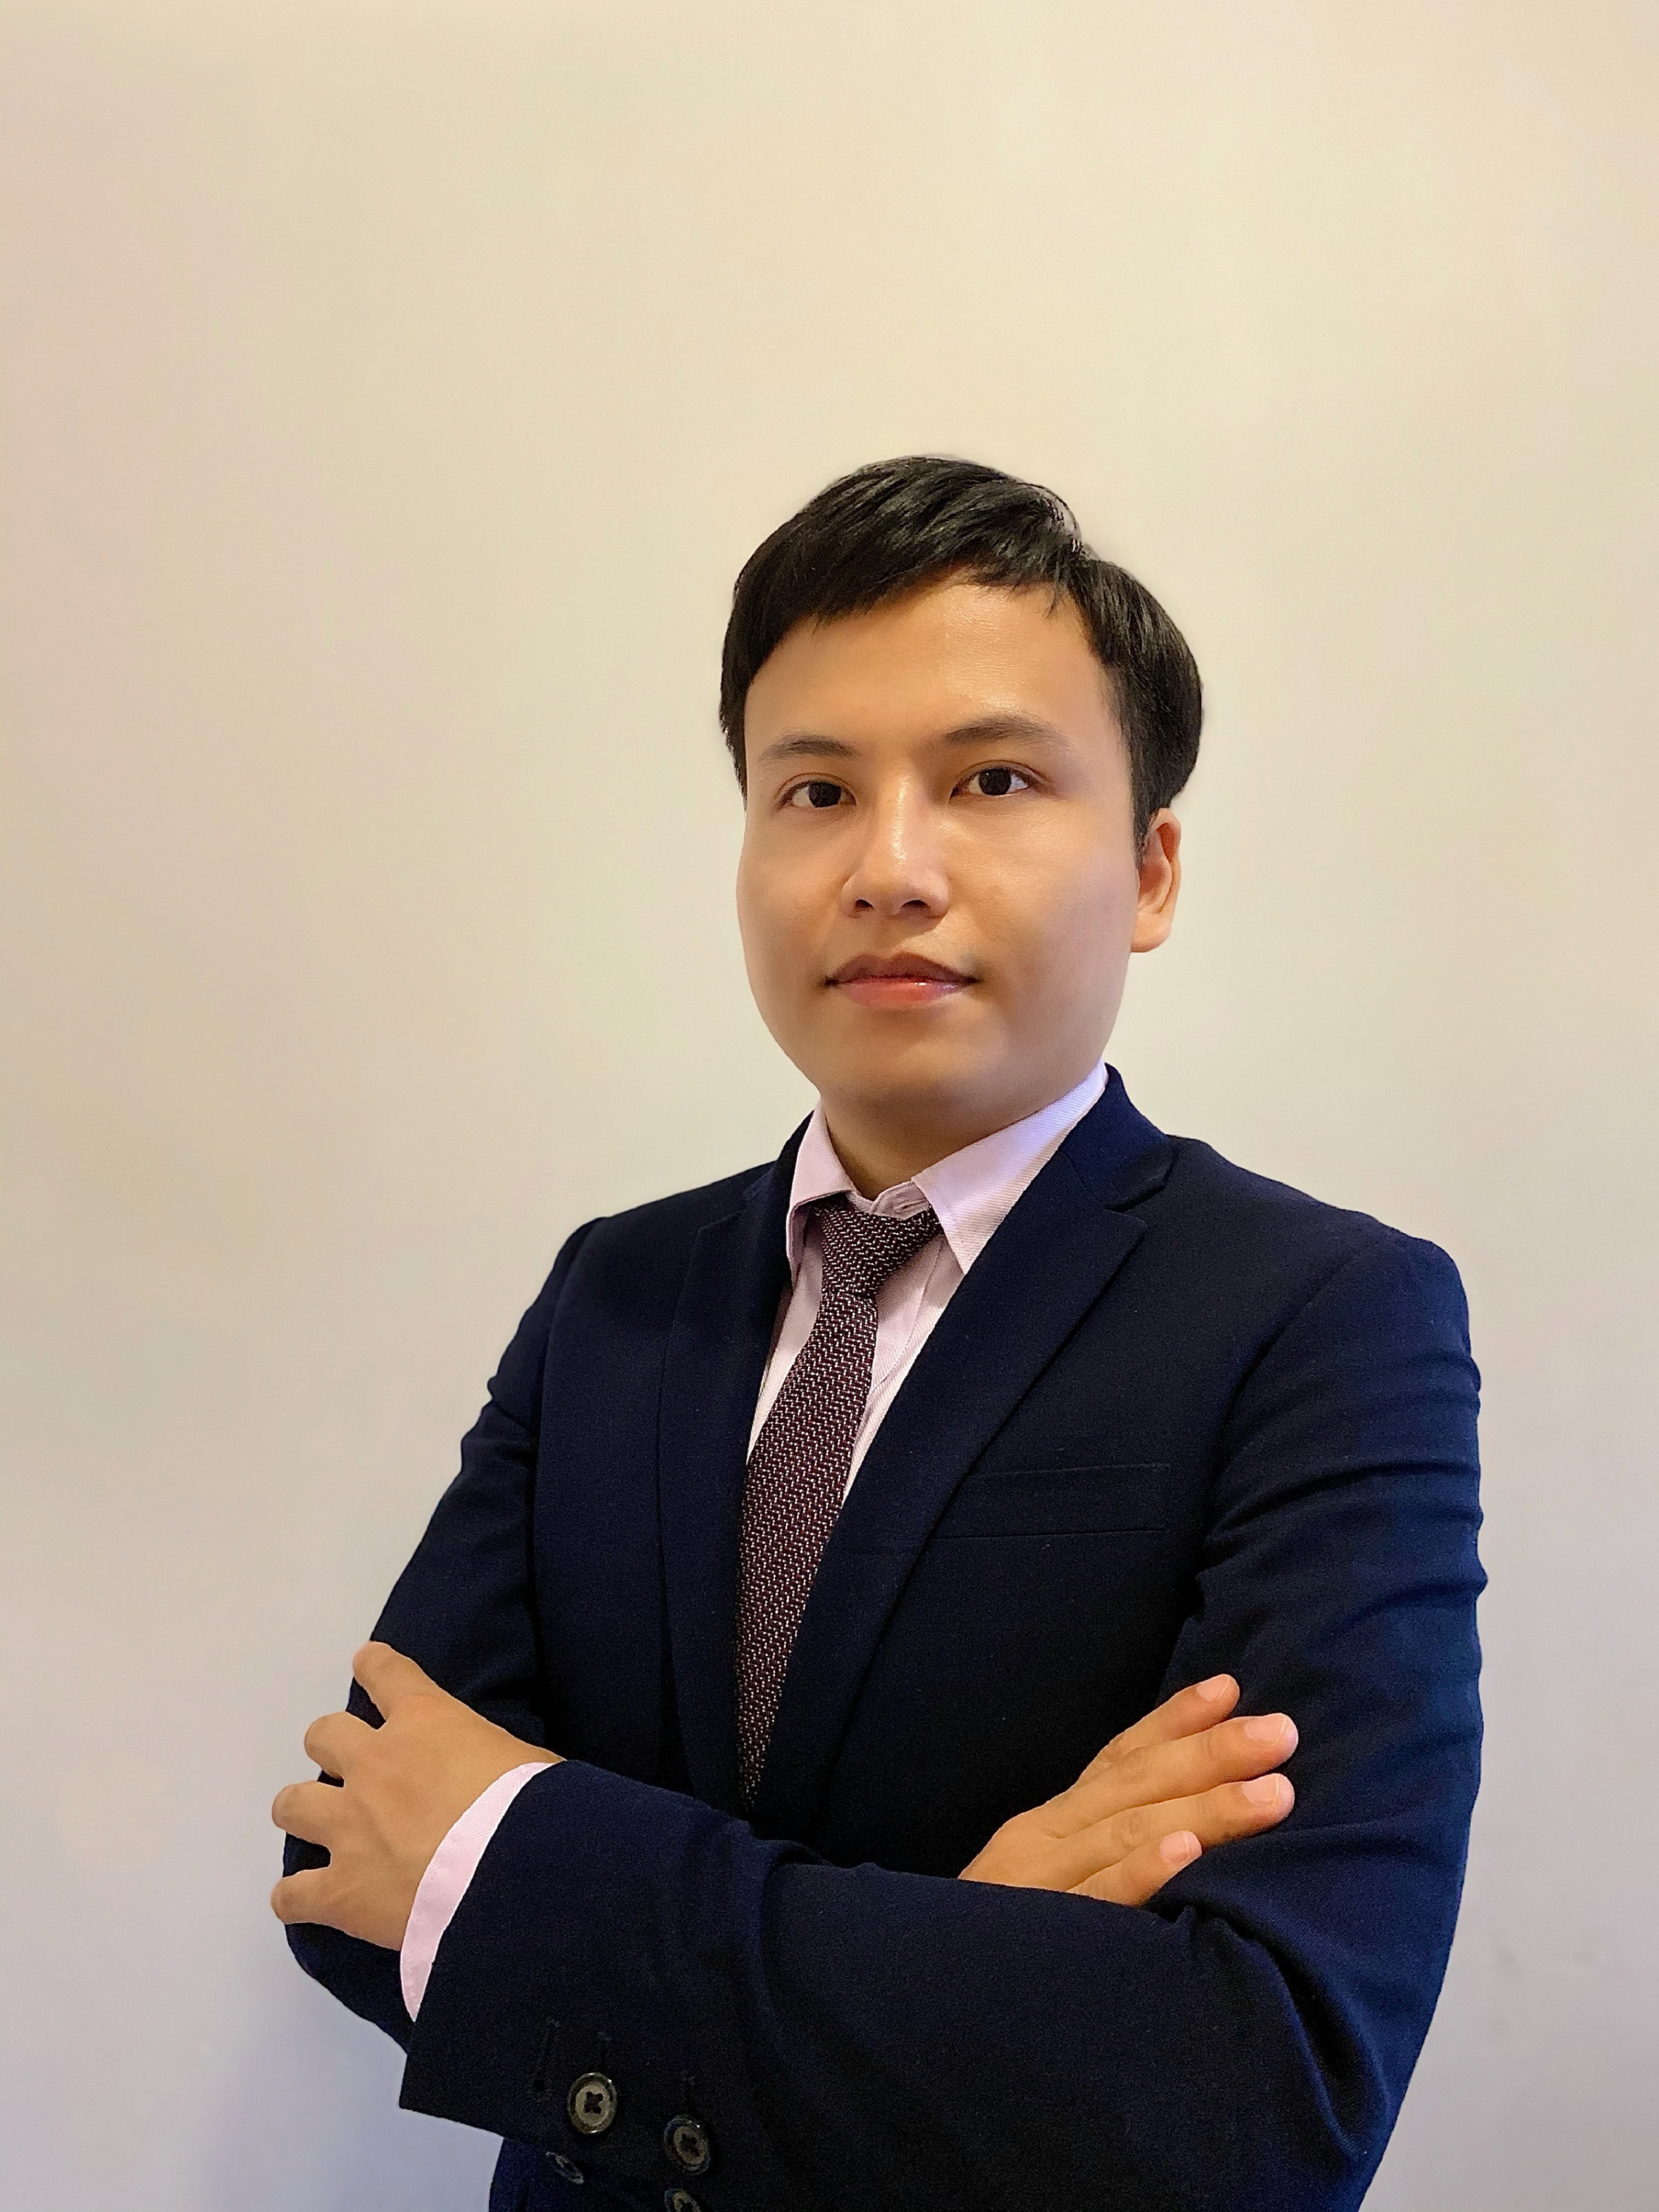 Mr. HUANG Jun Jie, first-author of the study.